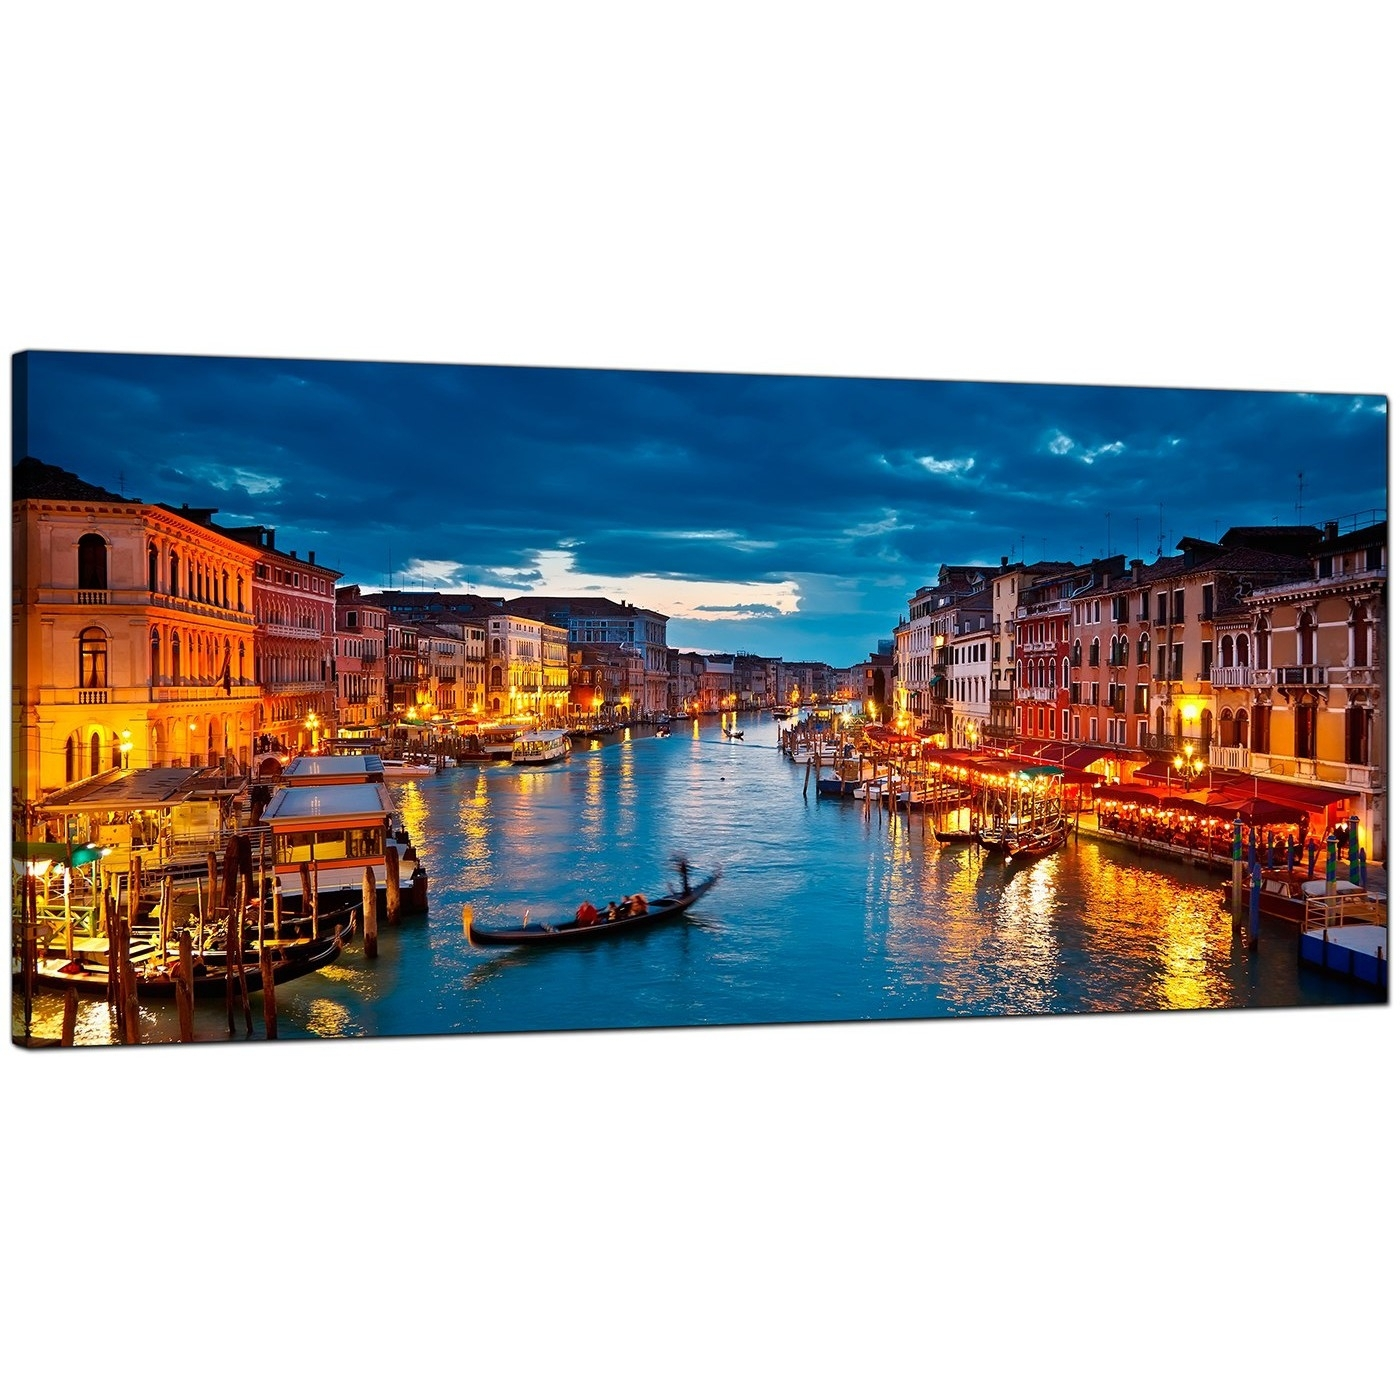 Cheap Canvas Prints Of Venice Italy For Your Living Room With Regard To Latest Italy Canvas Wall Art (View 3 of 15)